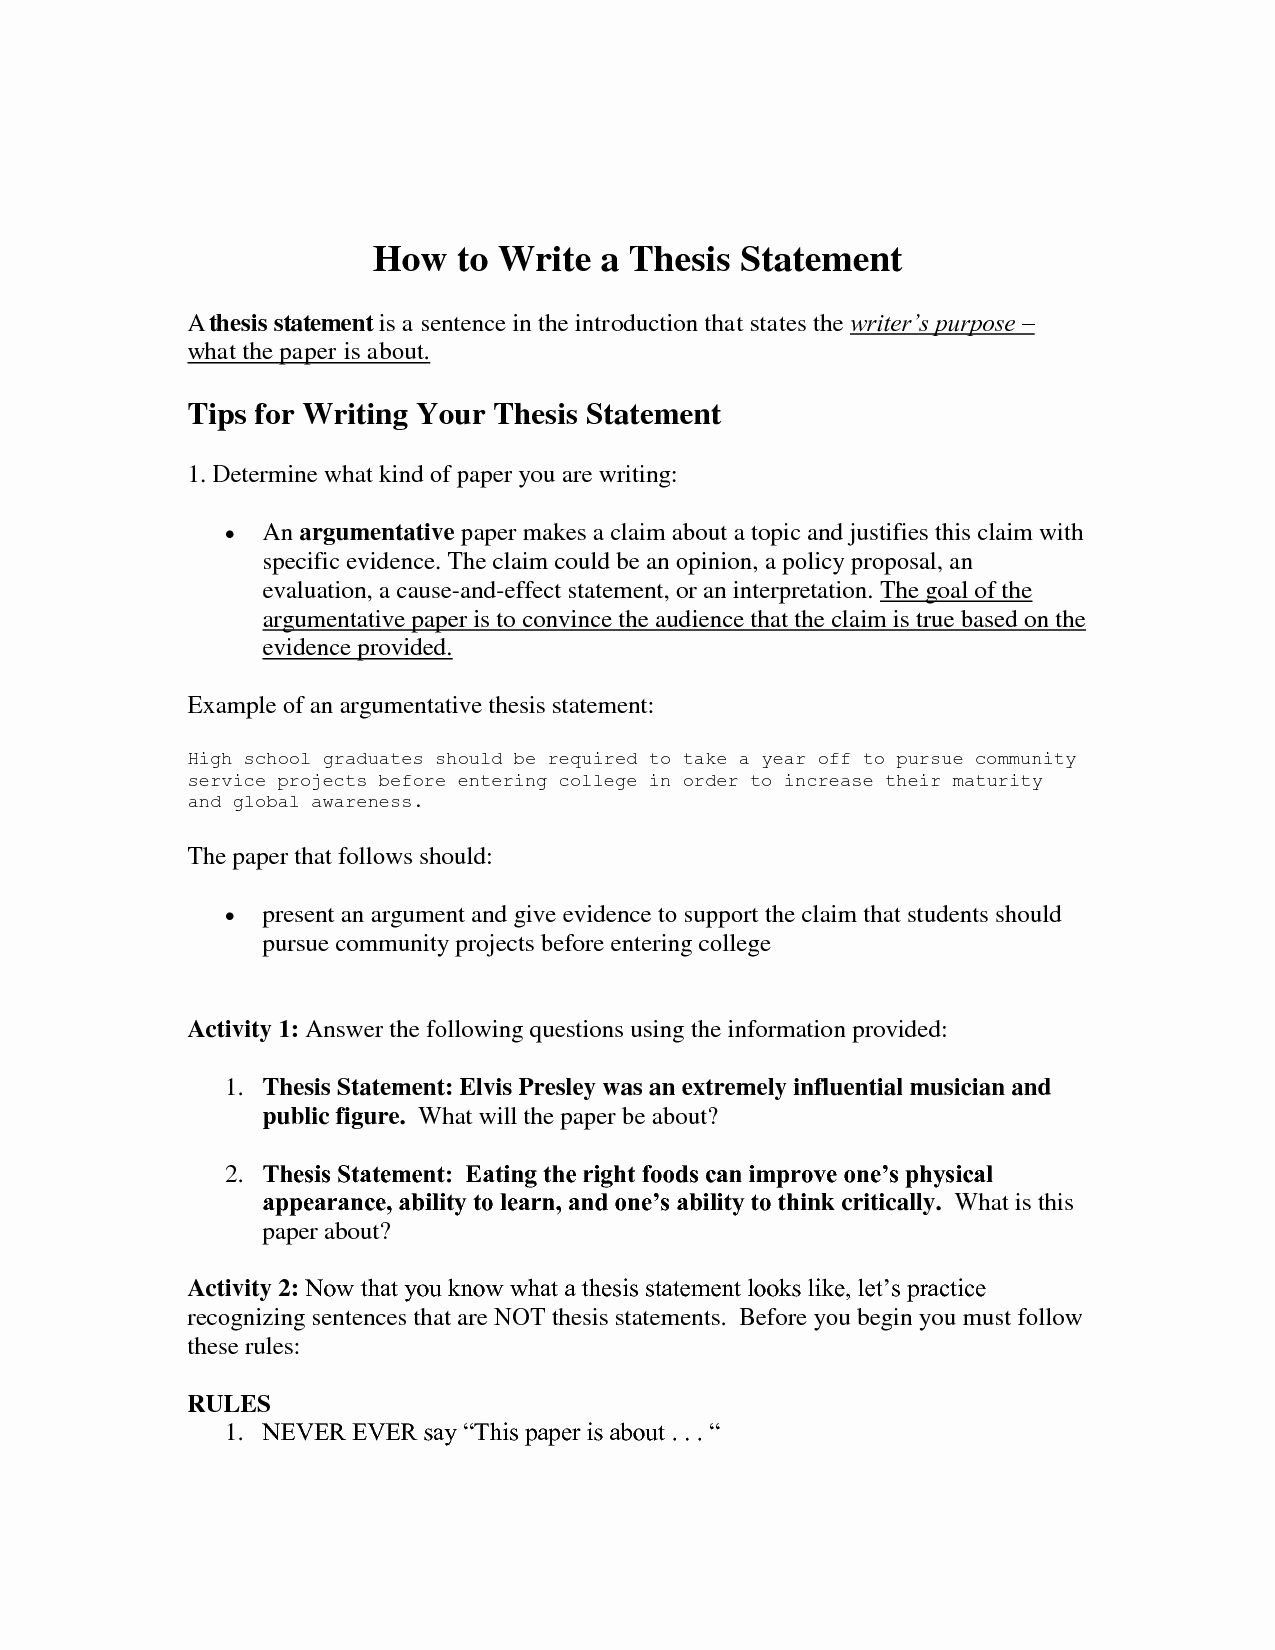 Writing A Thesis Statement Worksheet In 2020 Writing A Thesis Statement Thesis Statement Thesis Statement Examples